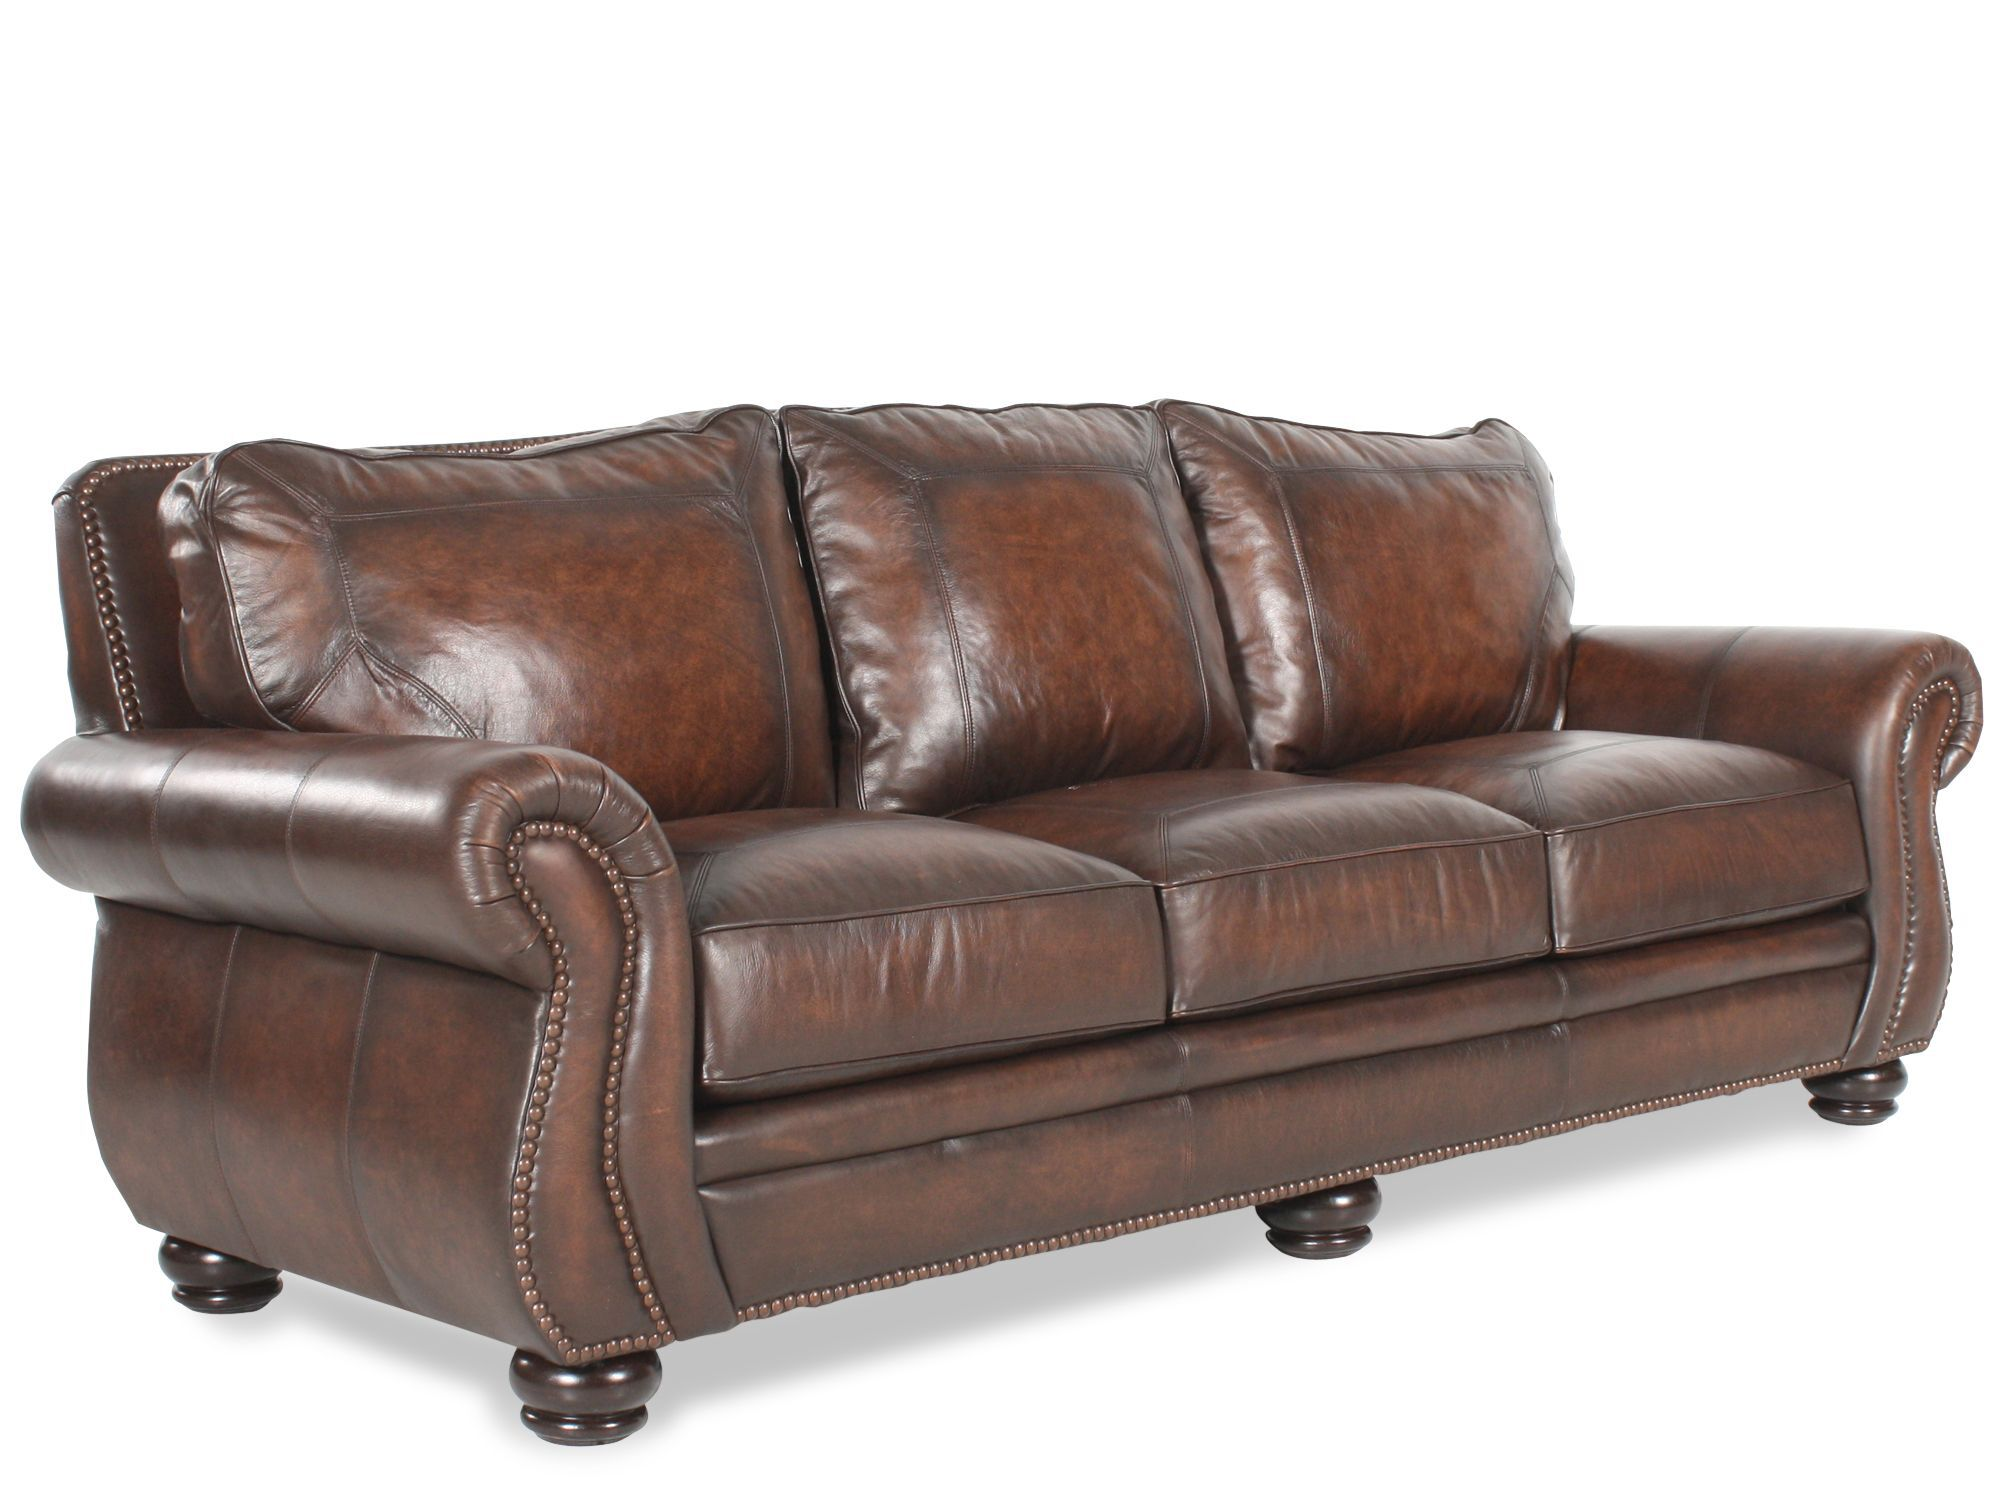 bernhardt cantor leather sofa price double corner beds reviews winslow 100